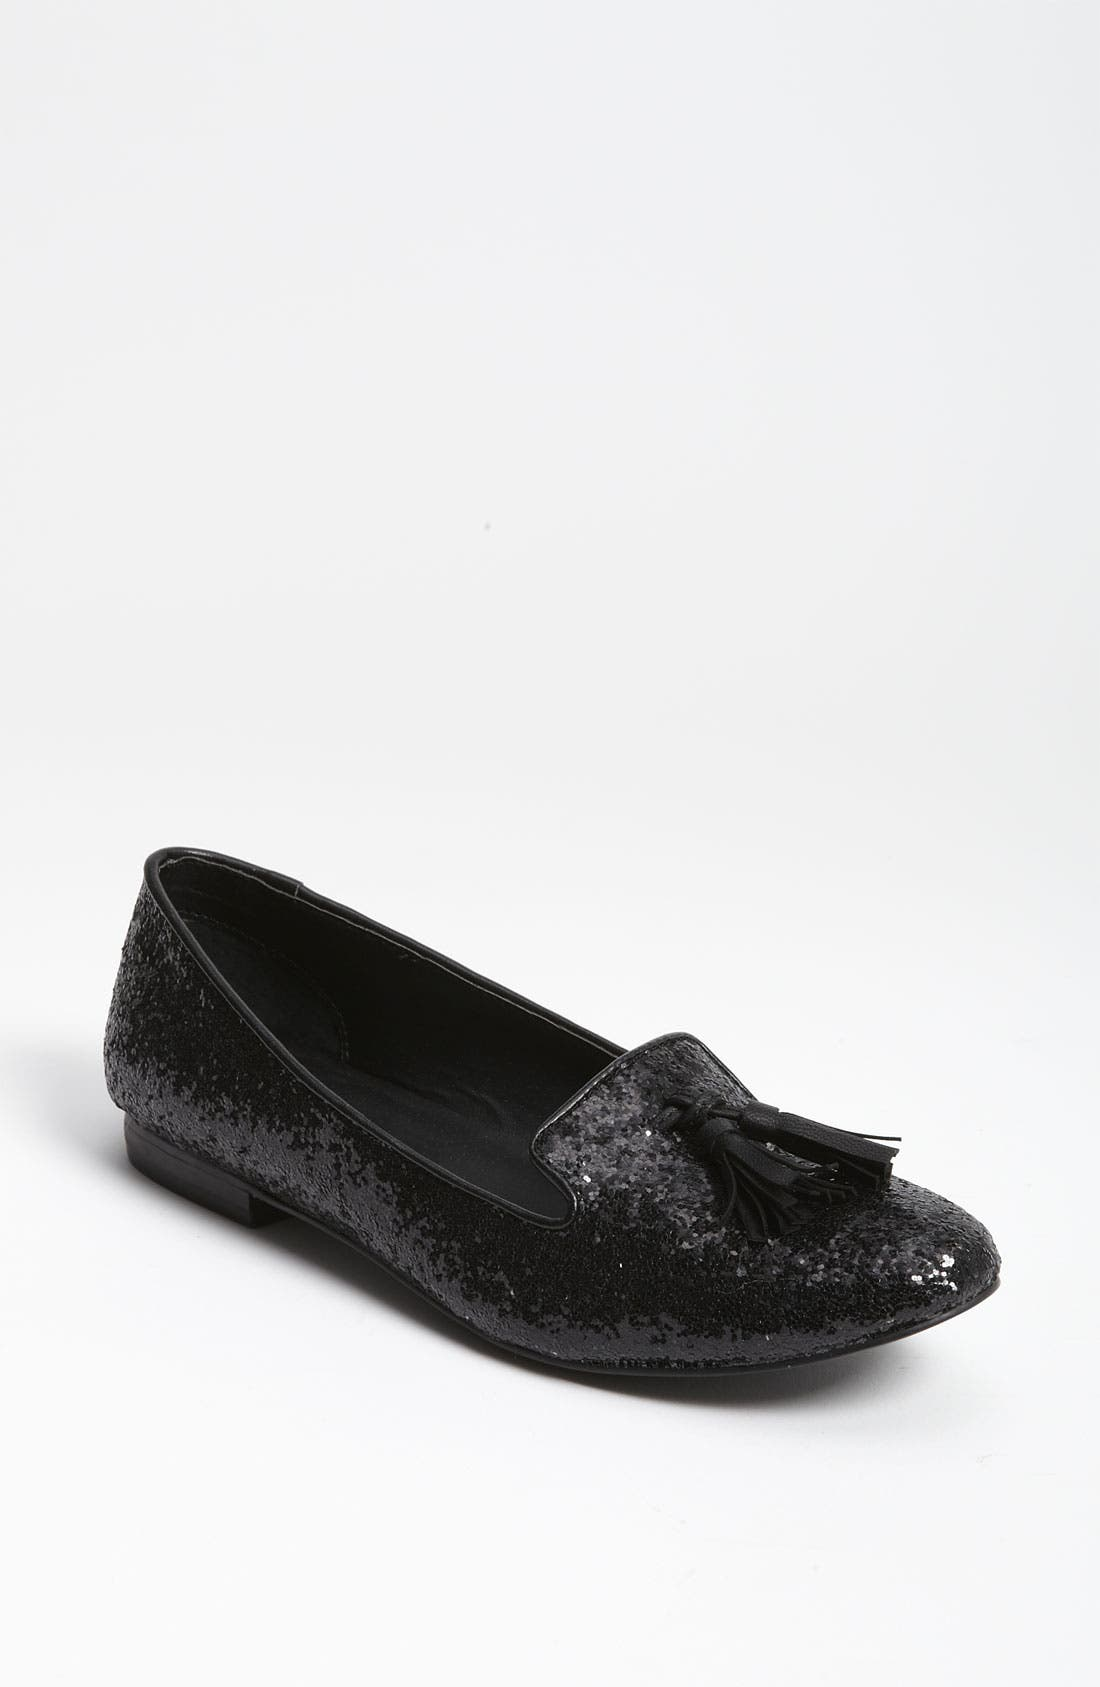 STEVE MADDEN 'Chaufur' Flat, Main, color, 001